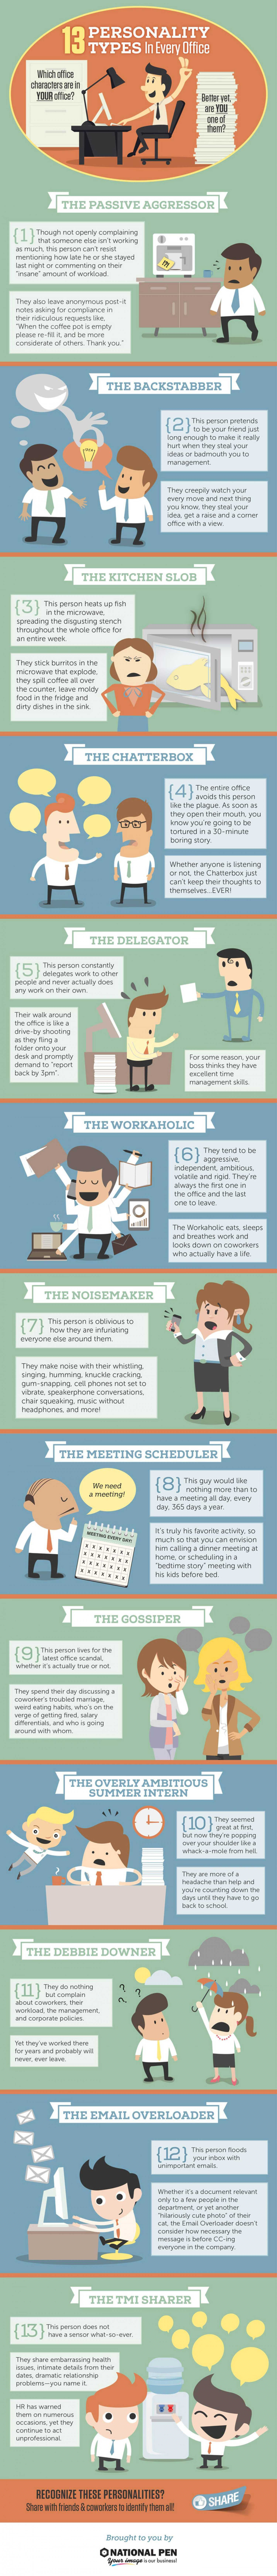 13 Personality Types In Every Office